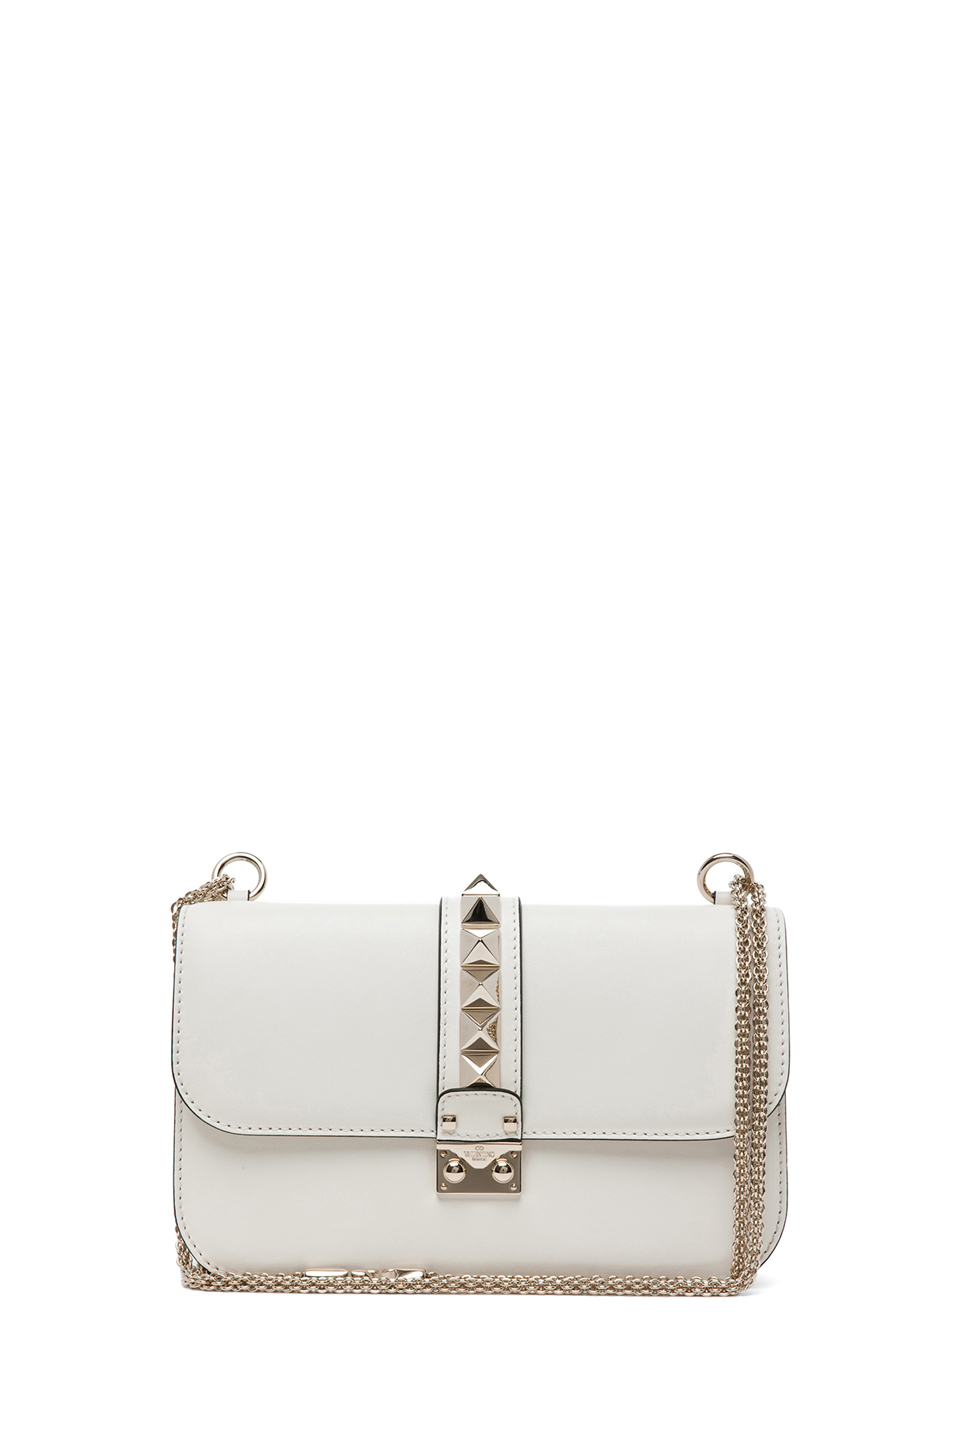 Valentino|Small Lock Flap Bag in Light Ivory